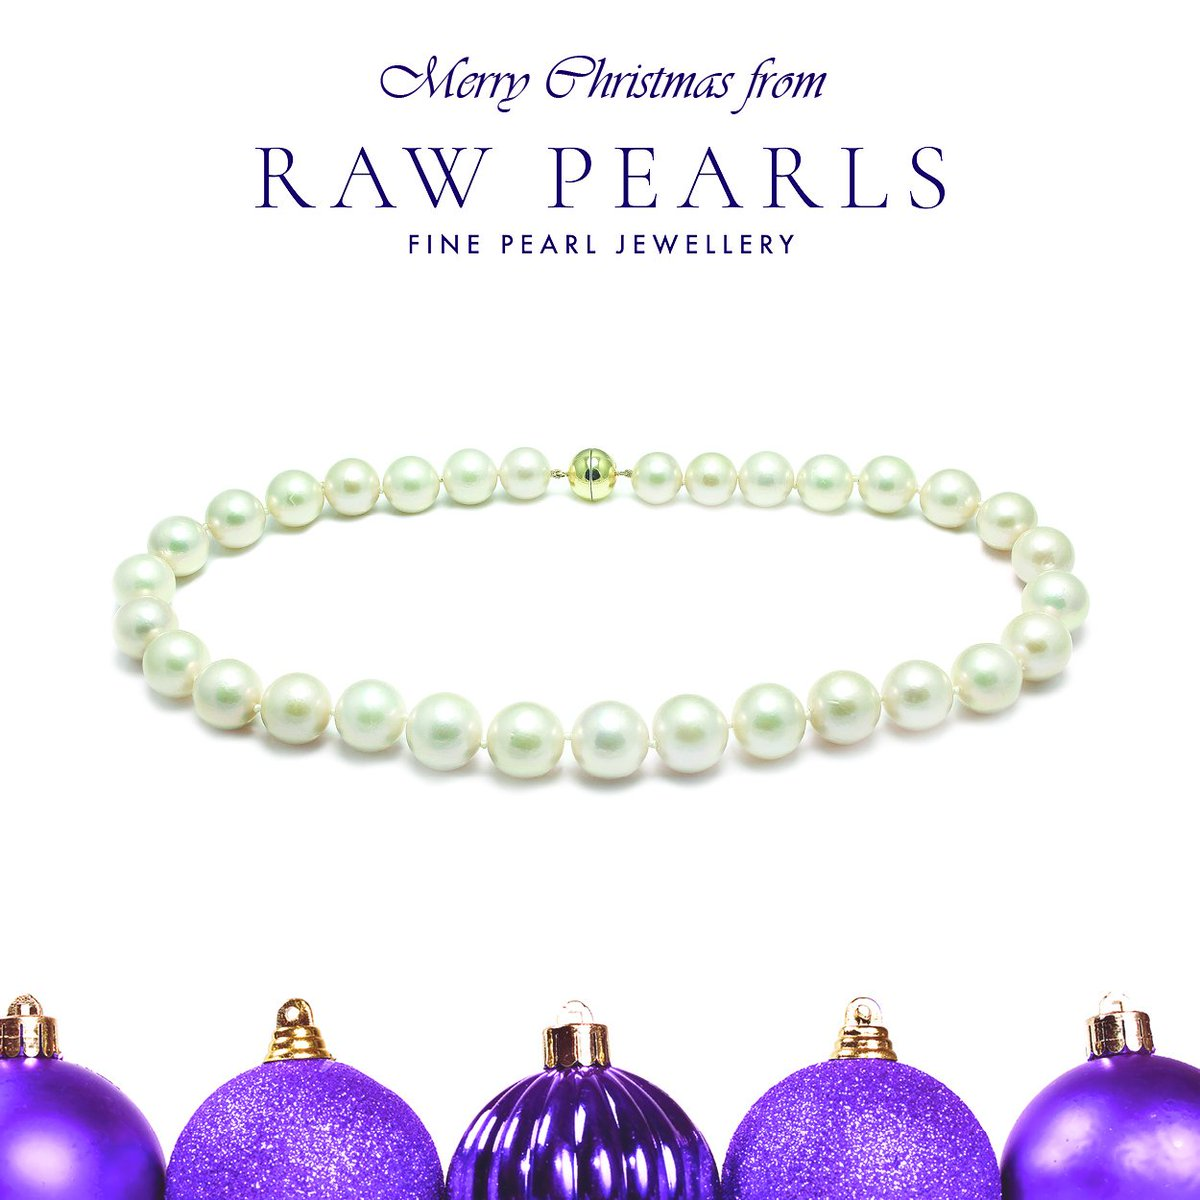 Does your #pearl display need something big and bold? These are  cultured 11-15mm #nucleatedpearls strung on a 12mm #WhiteGold magnetic clasp - sure to make a statement in your window! Order code: NCRPNC LOT#CC6-2A CL1MAG12YG. Email miranda@rawpearls.com #pearlsupplier #bigpearls pic.twitter.com/rhej3LTXXp